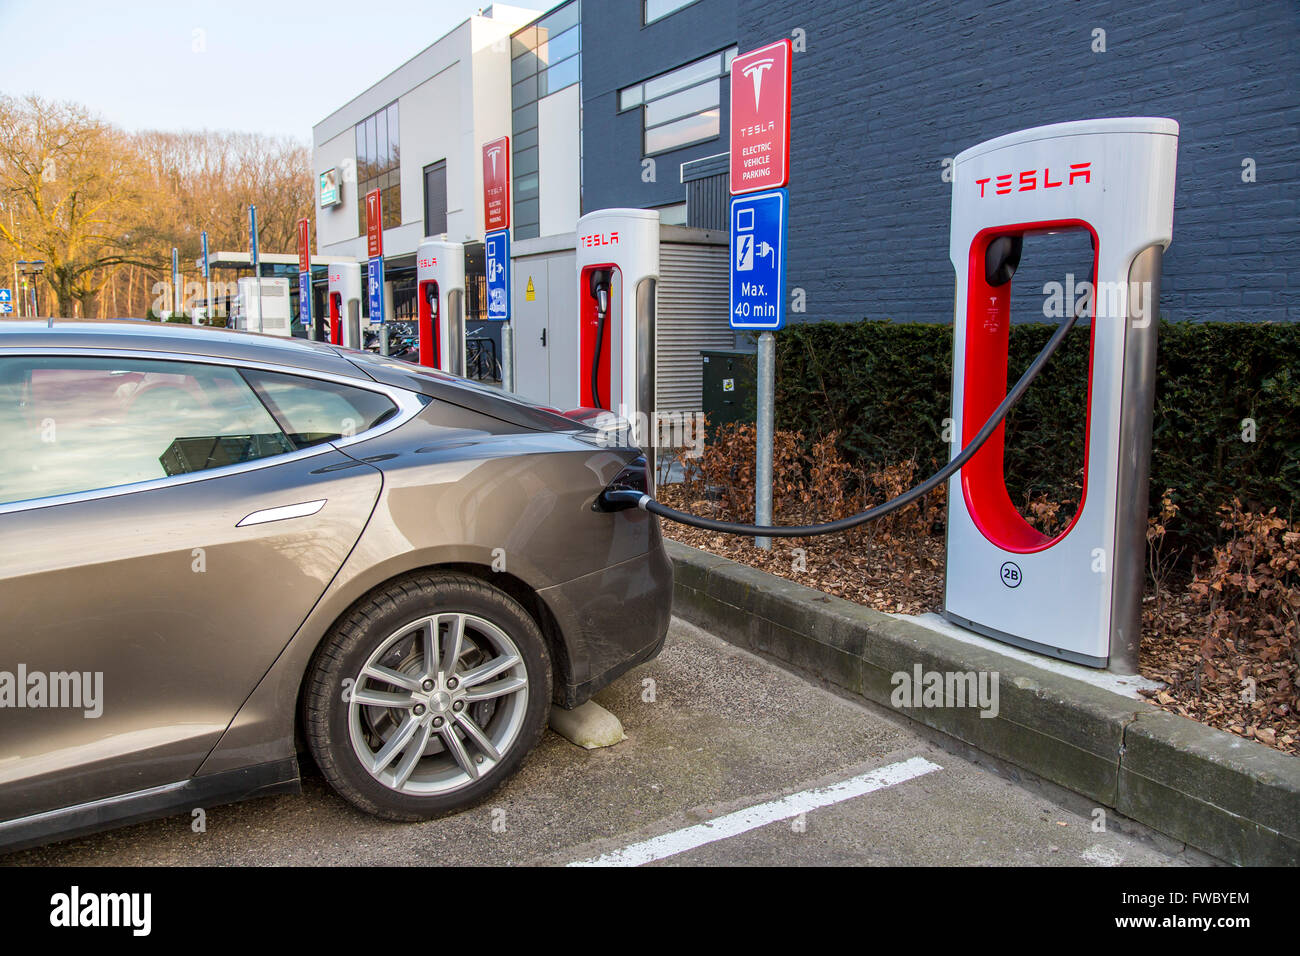 Tesla Motors Electric Car Charging Station In Eindhoven The